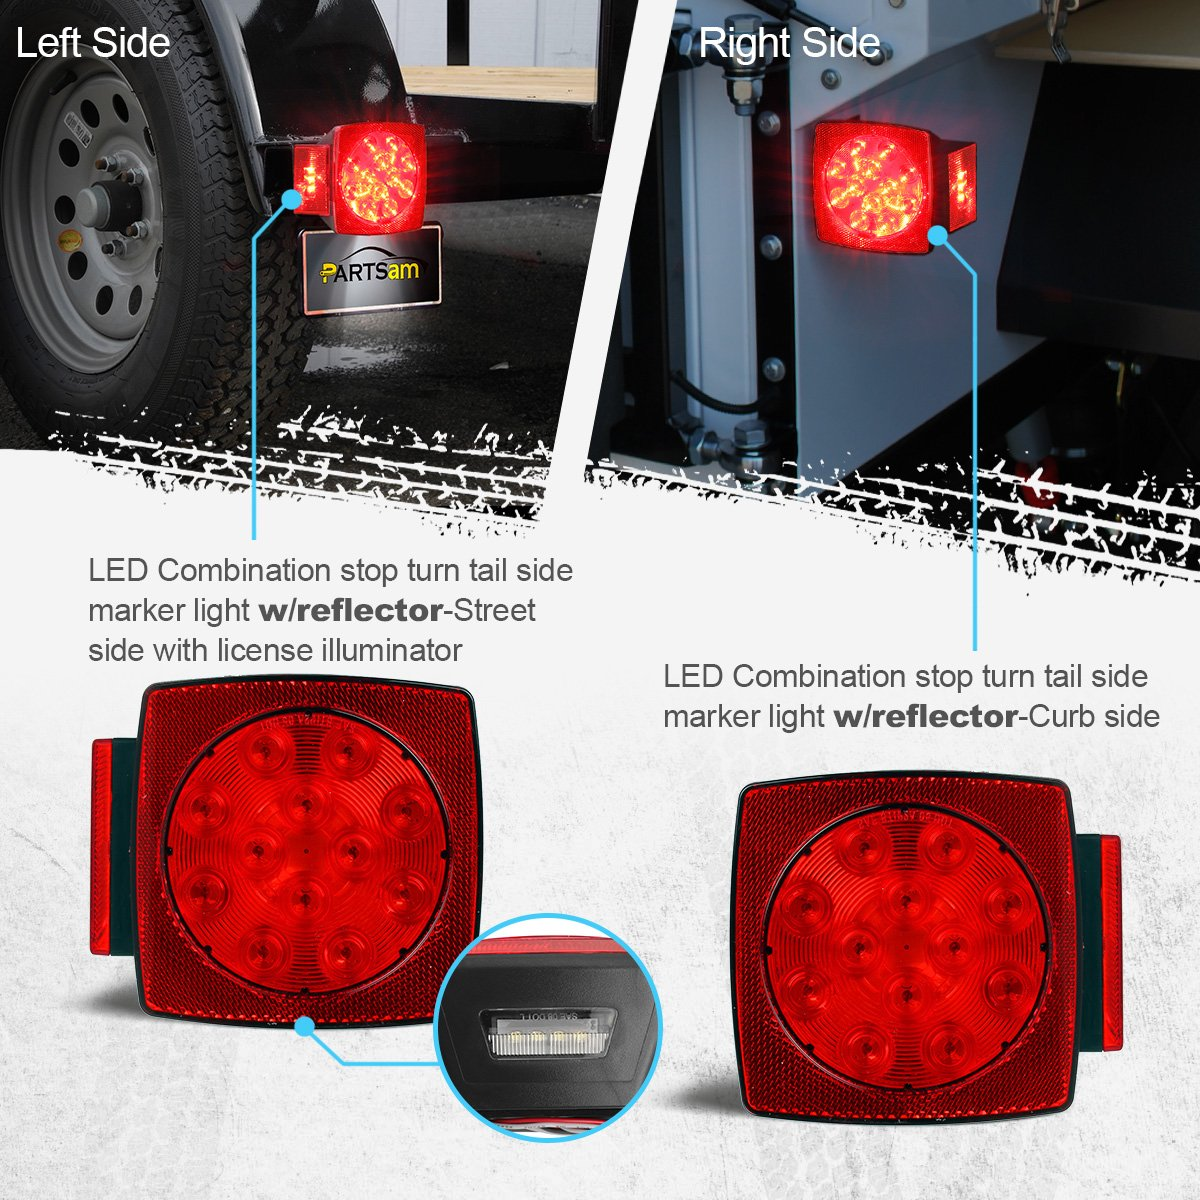 Partsam 12v Submersible Square Led Trailer Lightred Flat Four Pole Wiring Connection Kit Utility Brake Light Turn White Stop Tail License Running Lamp For Trailers Under 80 Boat